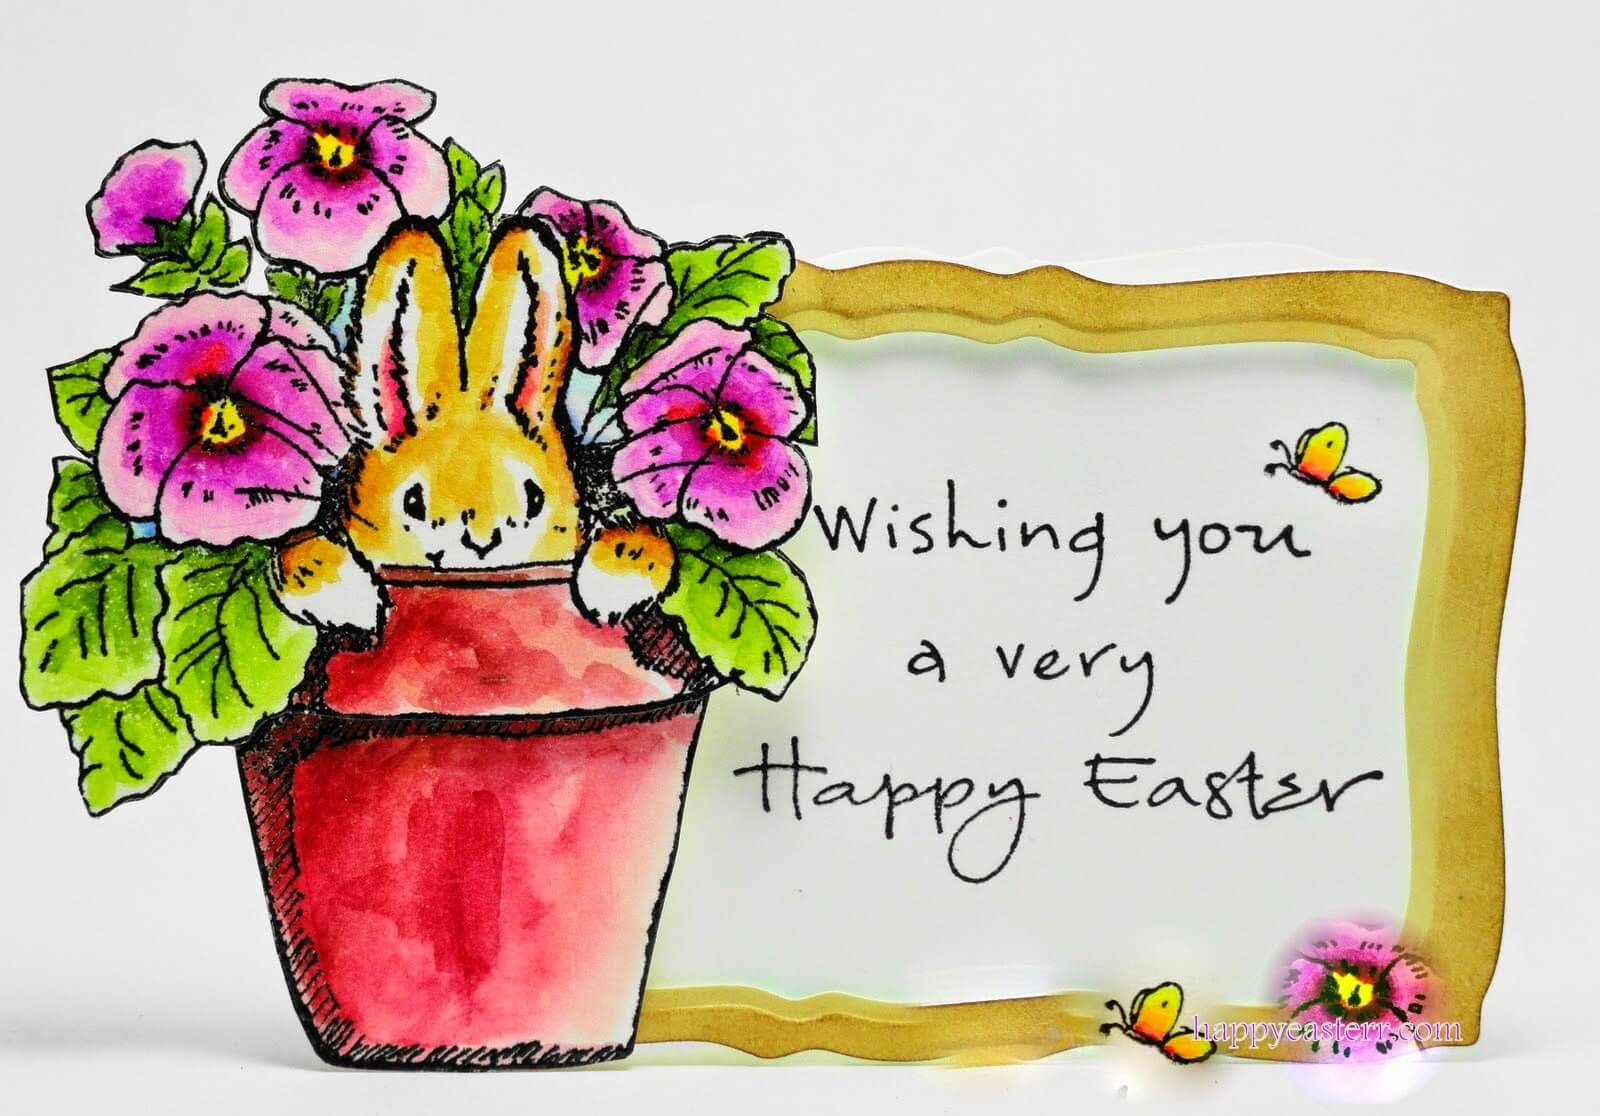 Happy Easter Cards Greeting Cards Ecards Gift Cards 2018 For